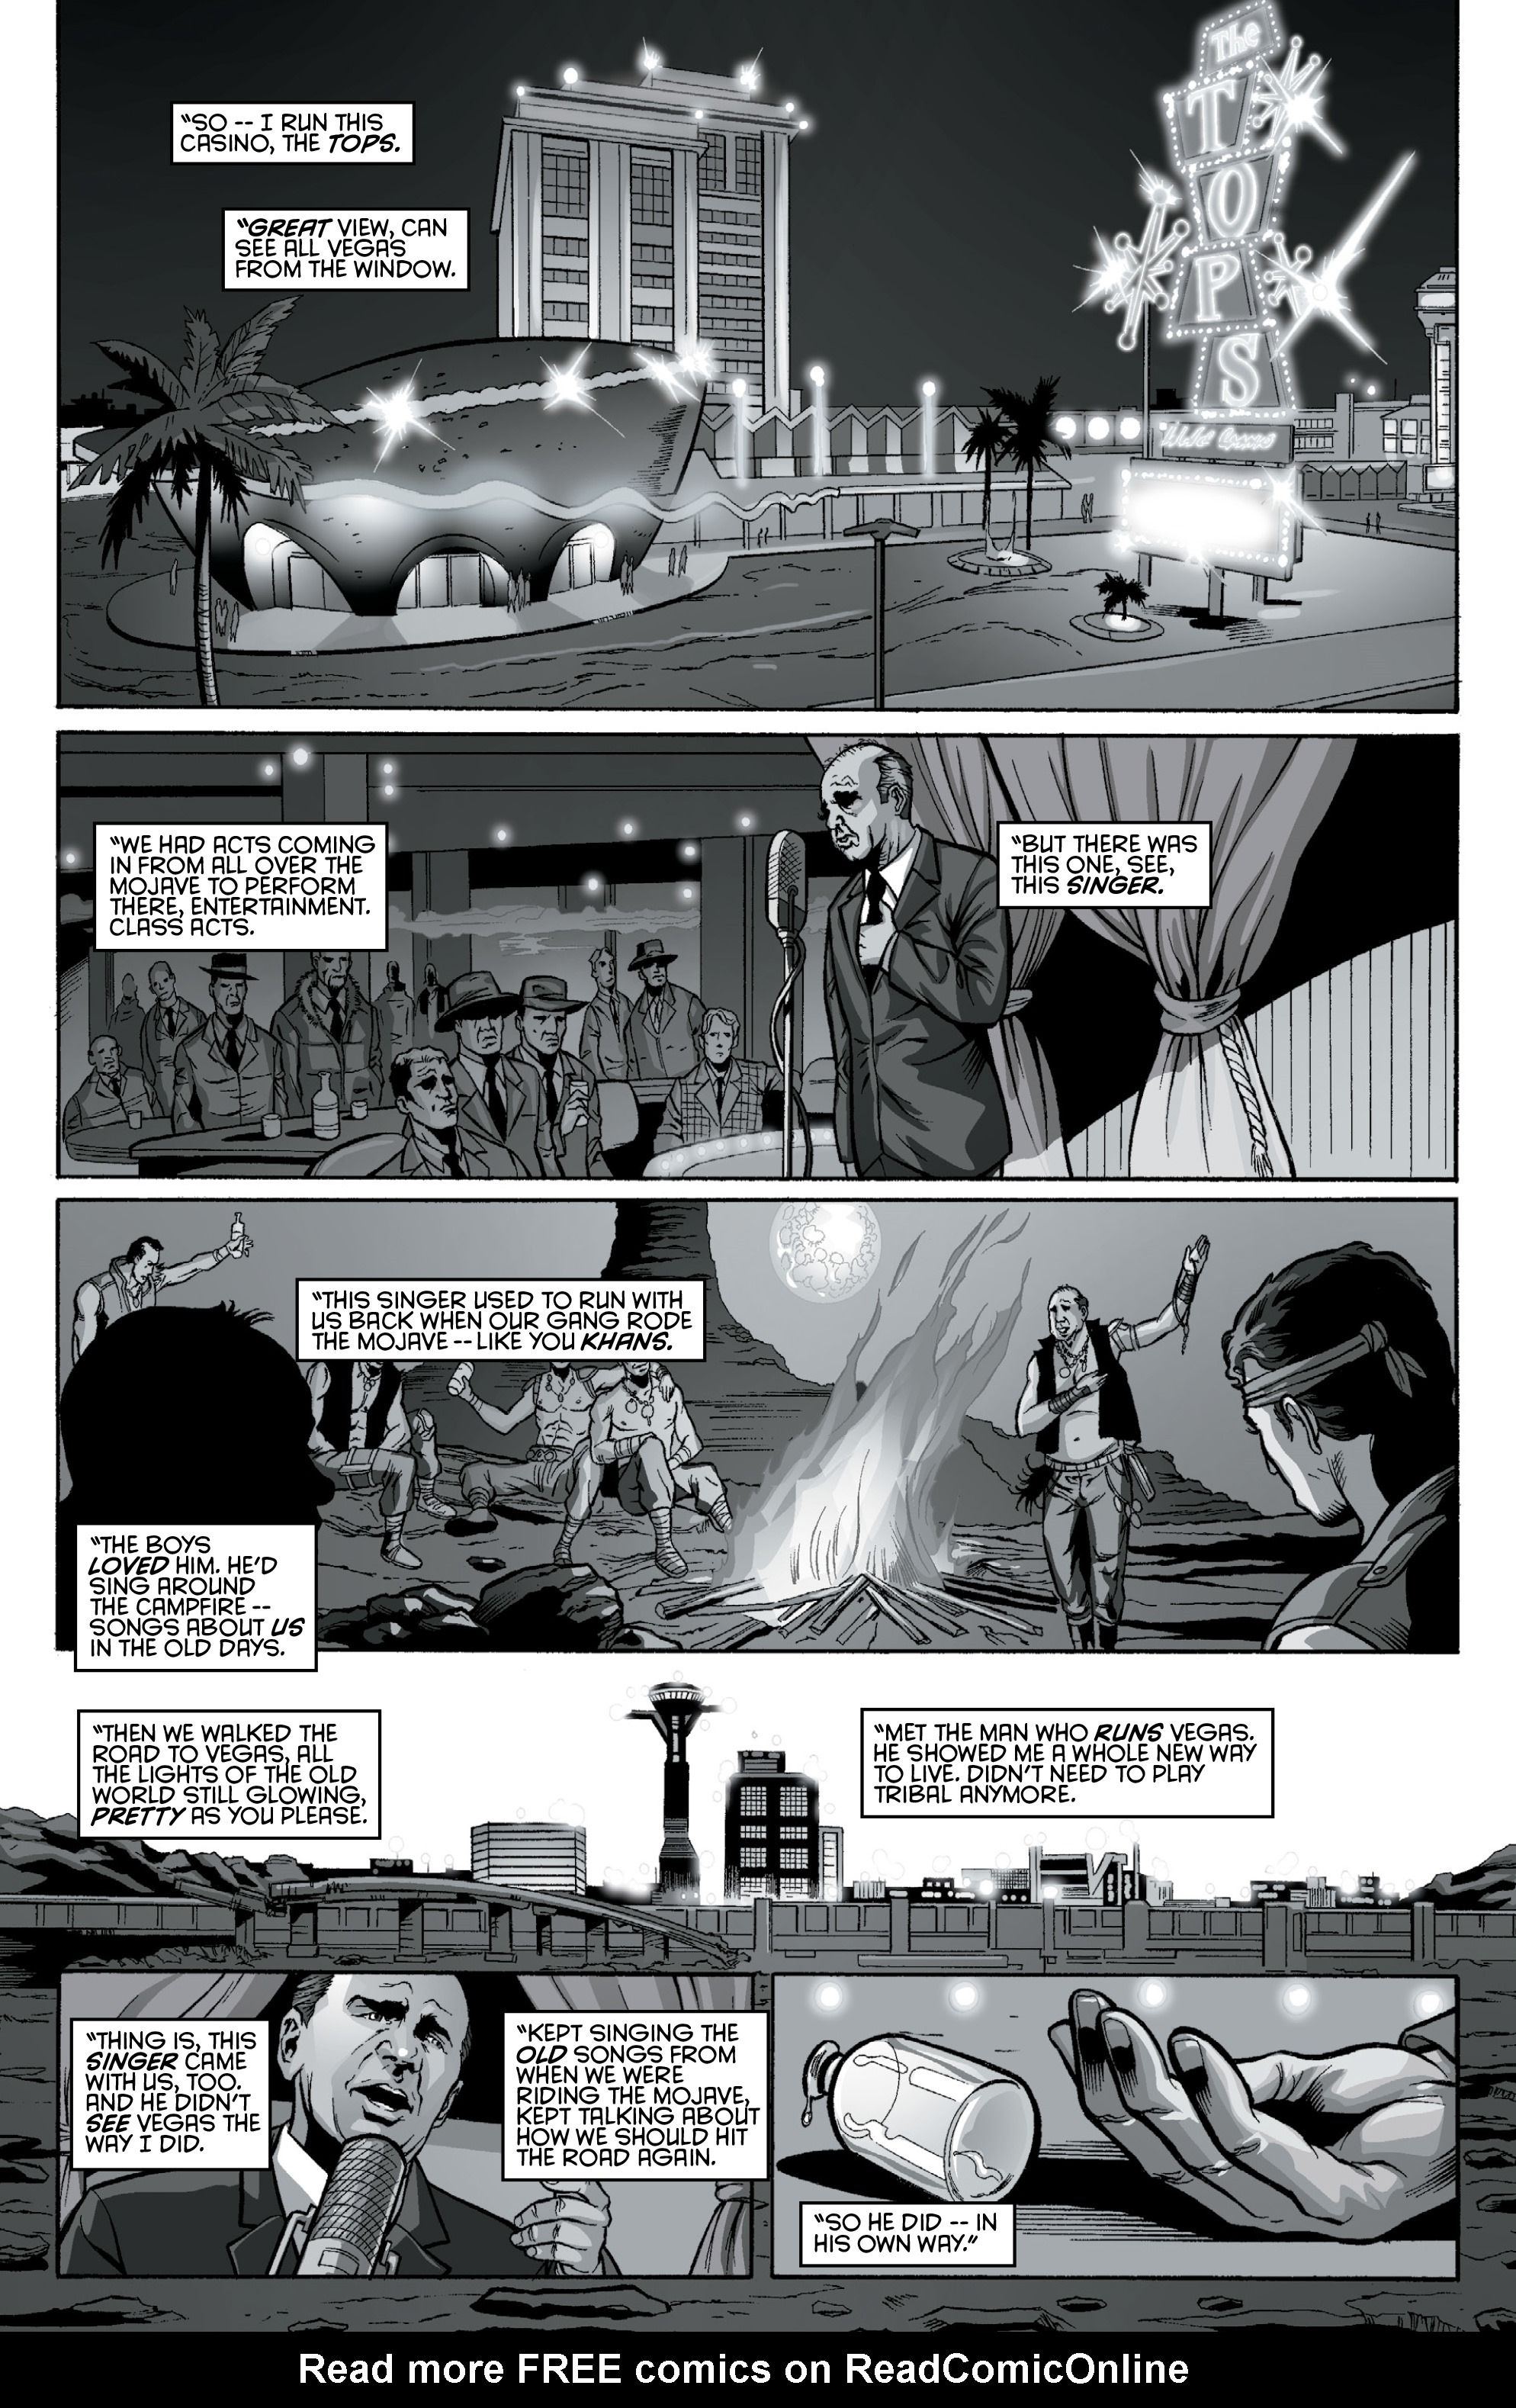 Read online Fallout: New Vegas-All Roads comic -  Issue # Full - 39